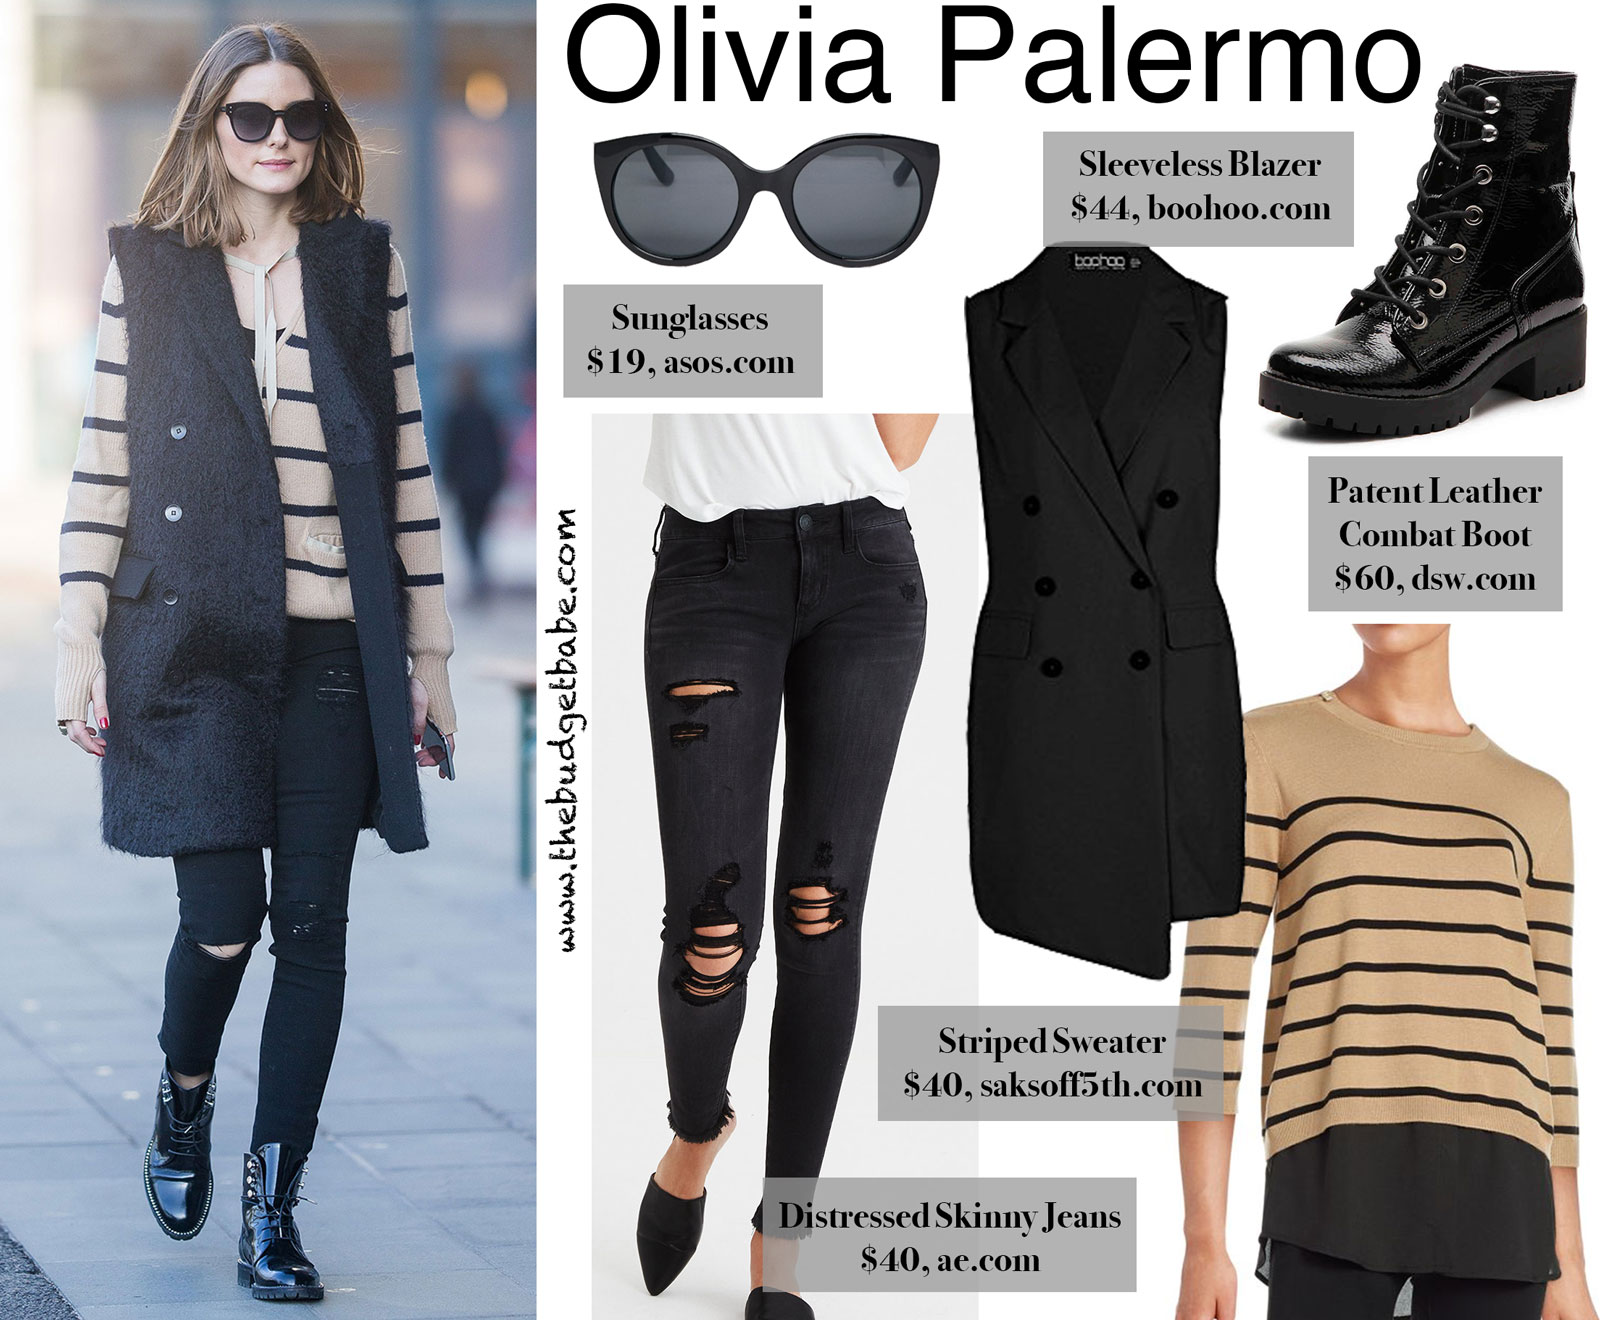 Olivia Palermo Long Vest and Striped Sweater Look for Less